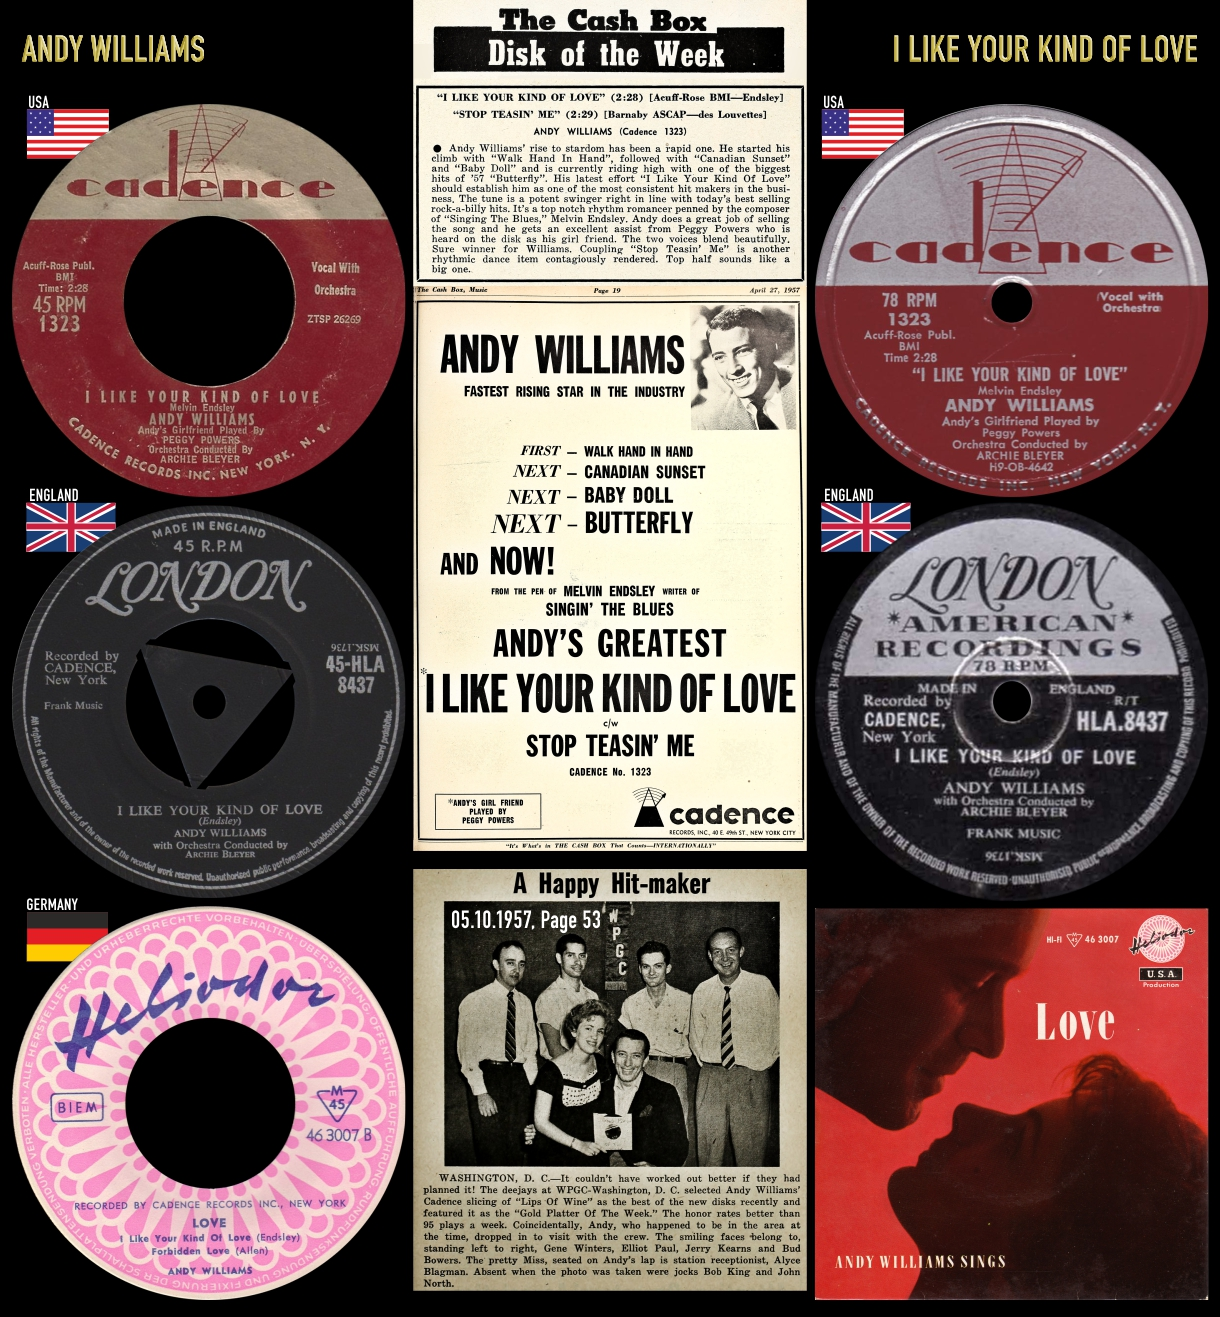 570525_Andy Williams_I Like Your Kind Of Love